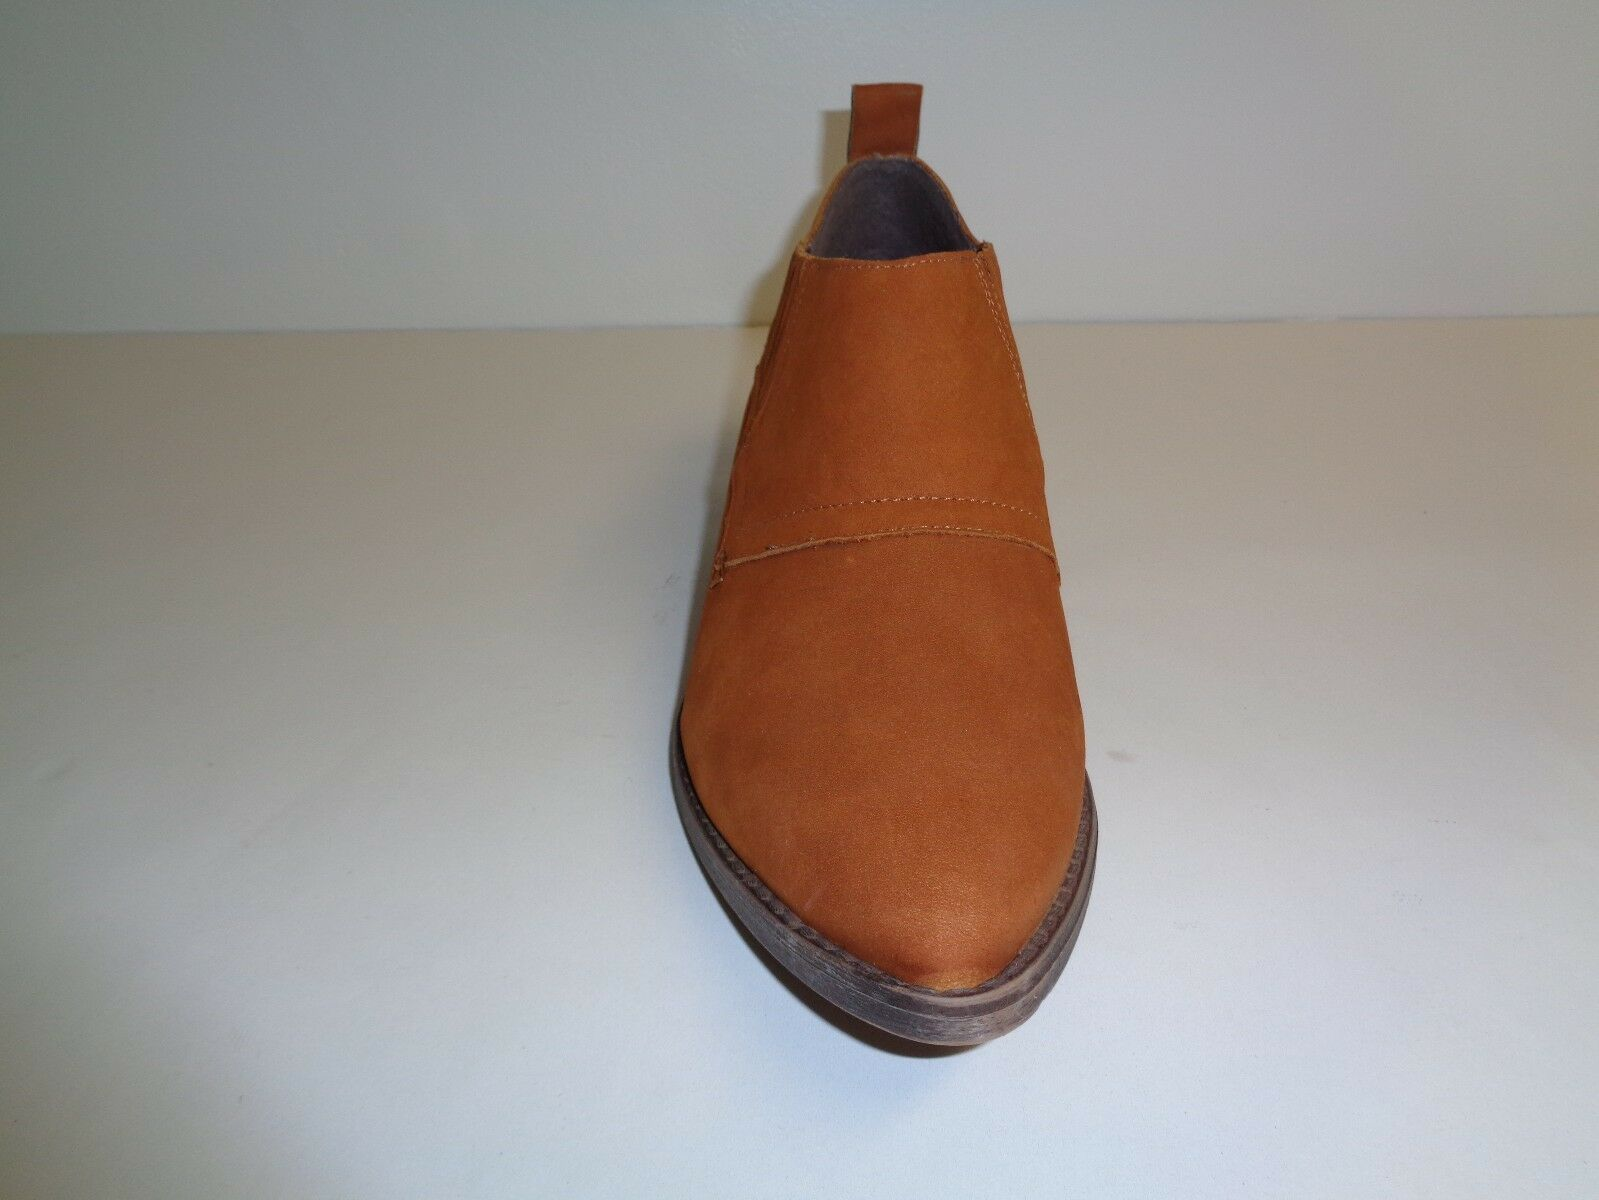 Steve Madden Size 10 M AUCKLAND Cognac Brown Chelsea Boots Boots Boots New Womens shoes b1a6e1